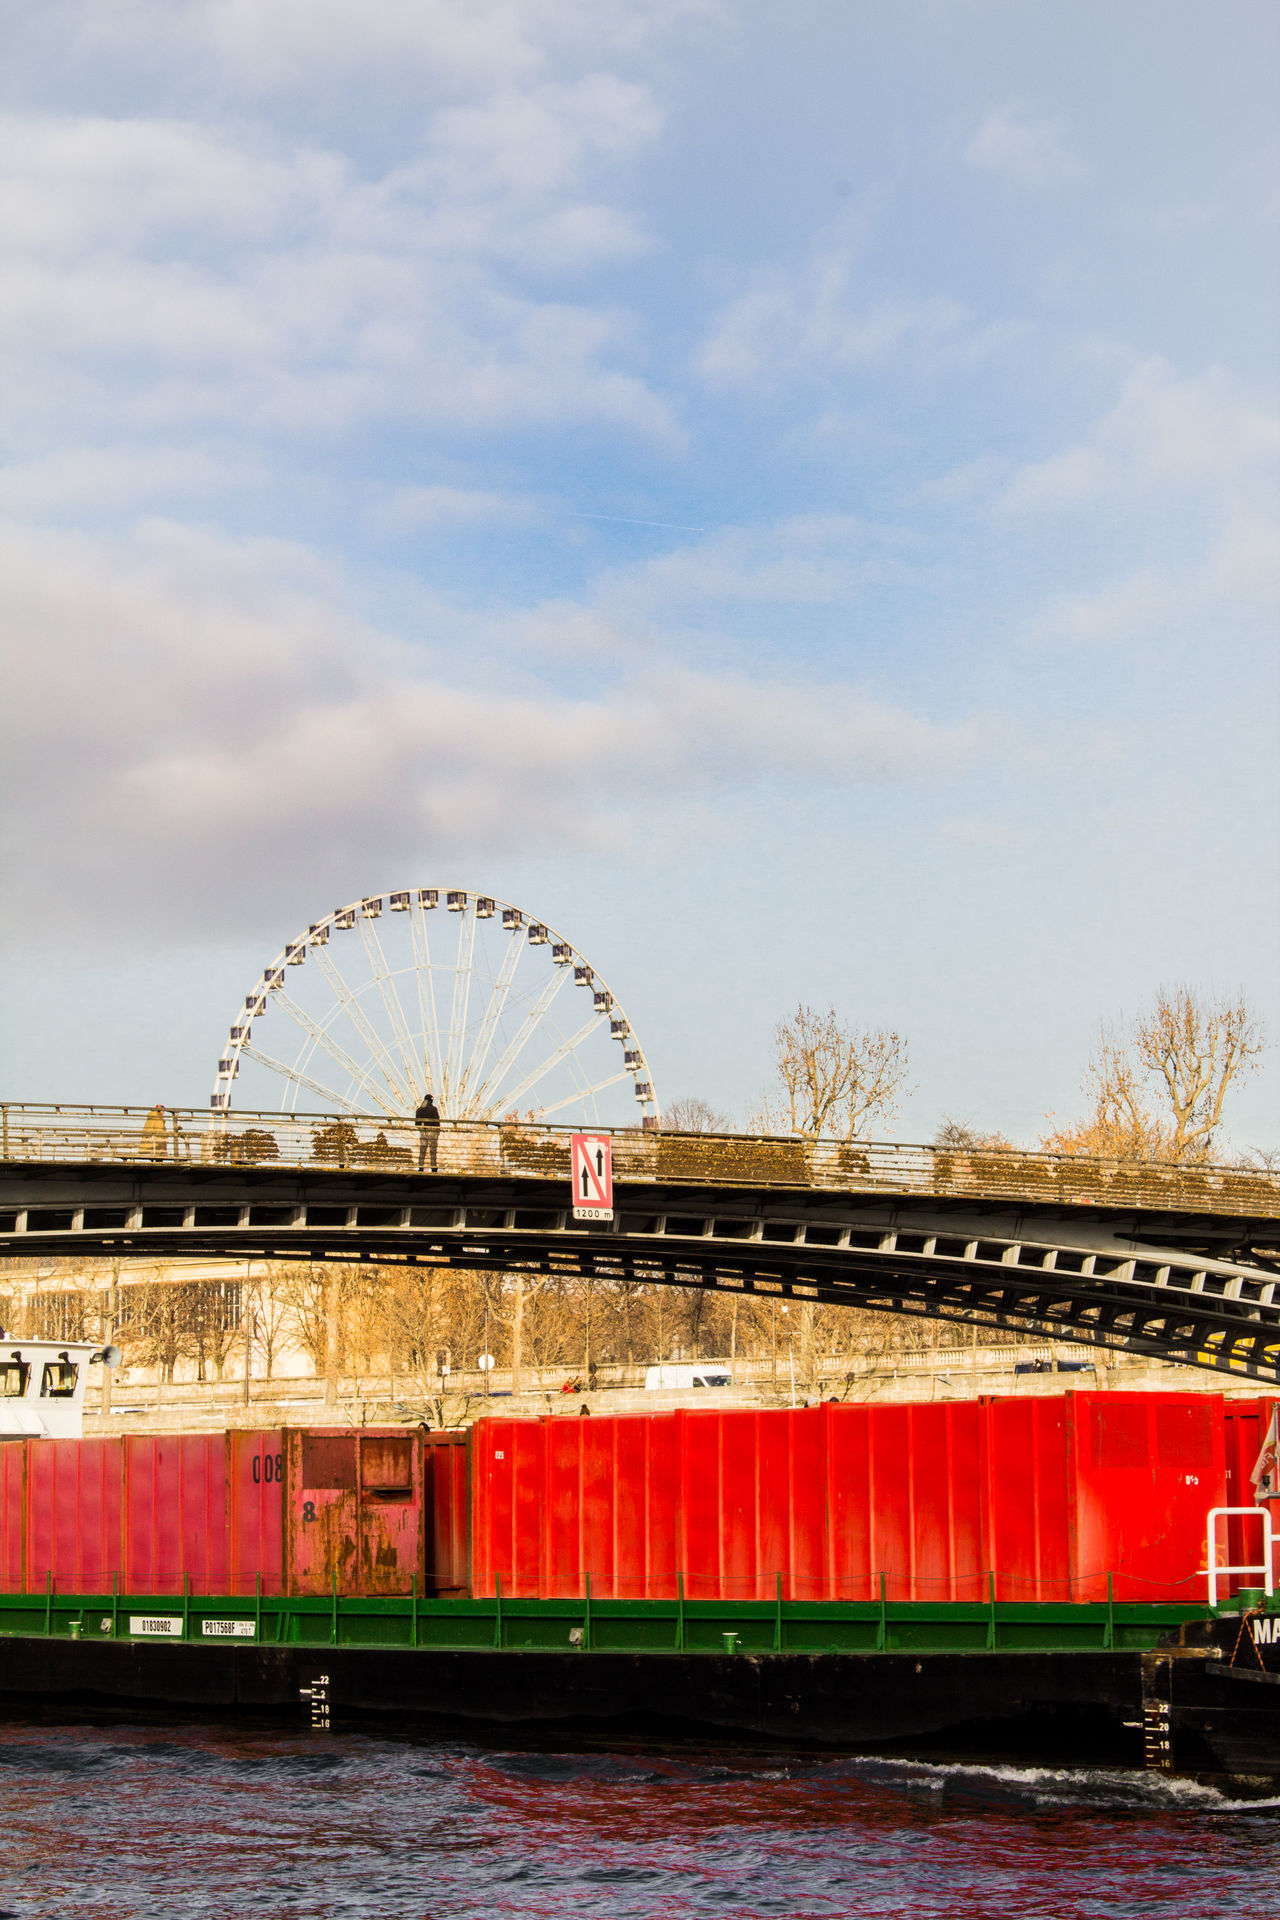 Walking in Paris Alone Architecture Barge Bridge Bridge - Man Made Structure City City Life City View  Cloud Day Industrial Man Mode Of Transport Paris Red River River View Seine Sky Standing Transportation Urban Adapted To The City Urbanphotography Wheel